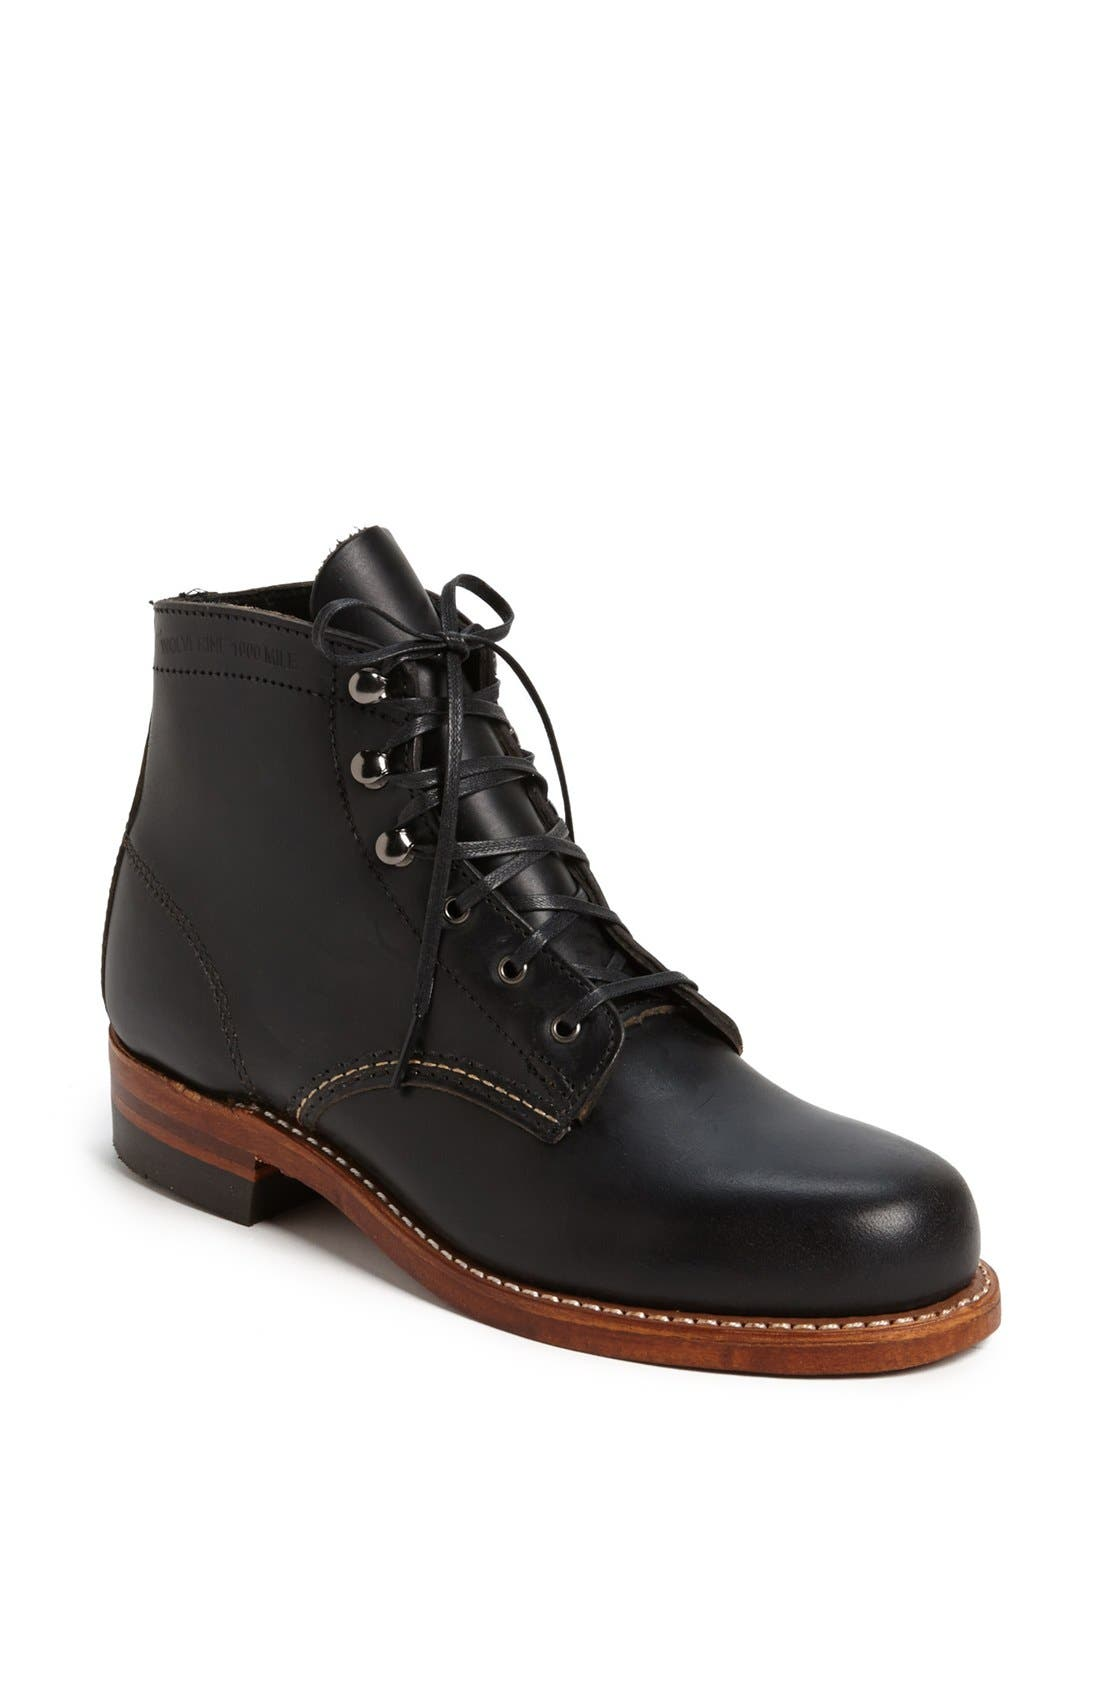 '1000 Mile' Leather Boot,                             Main thumbnail 1, color,                             001